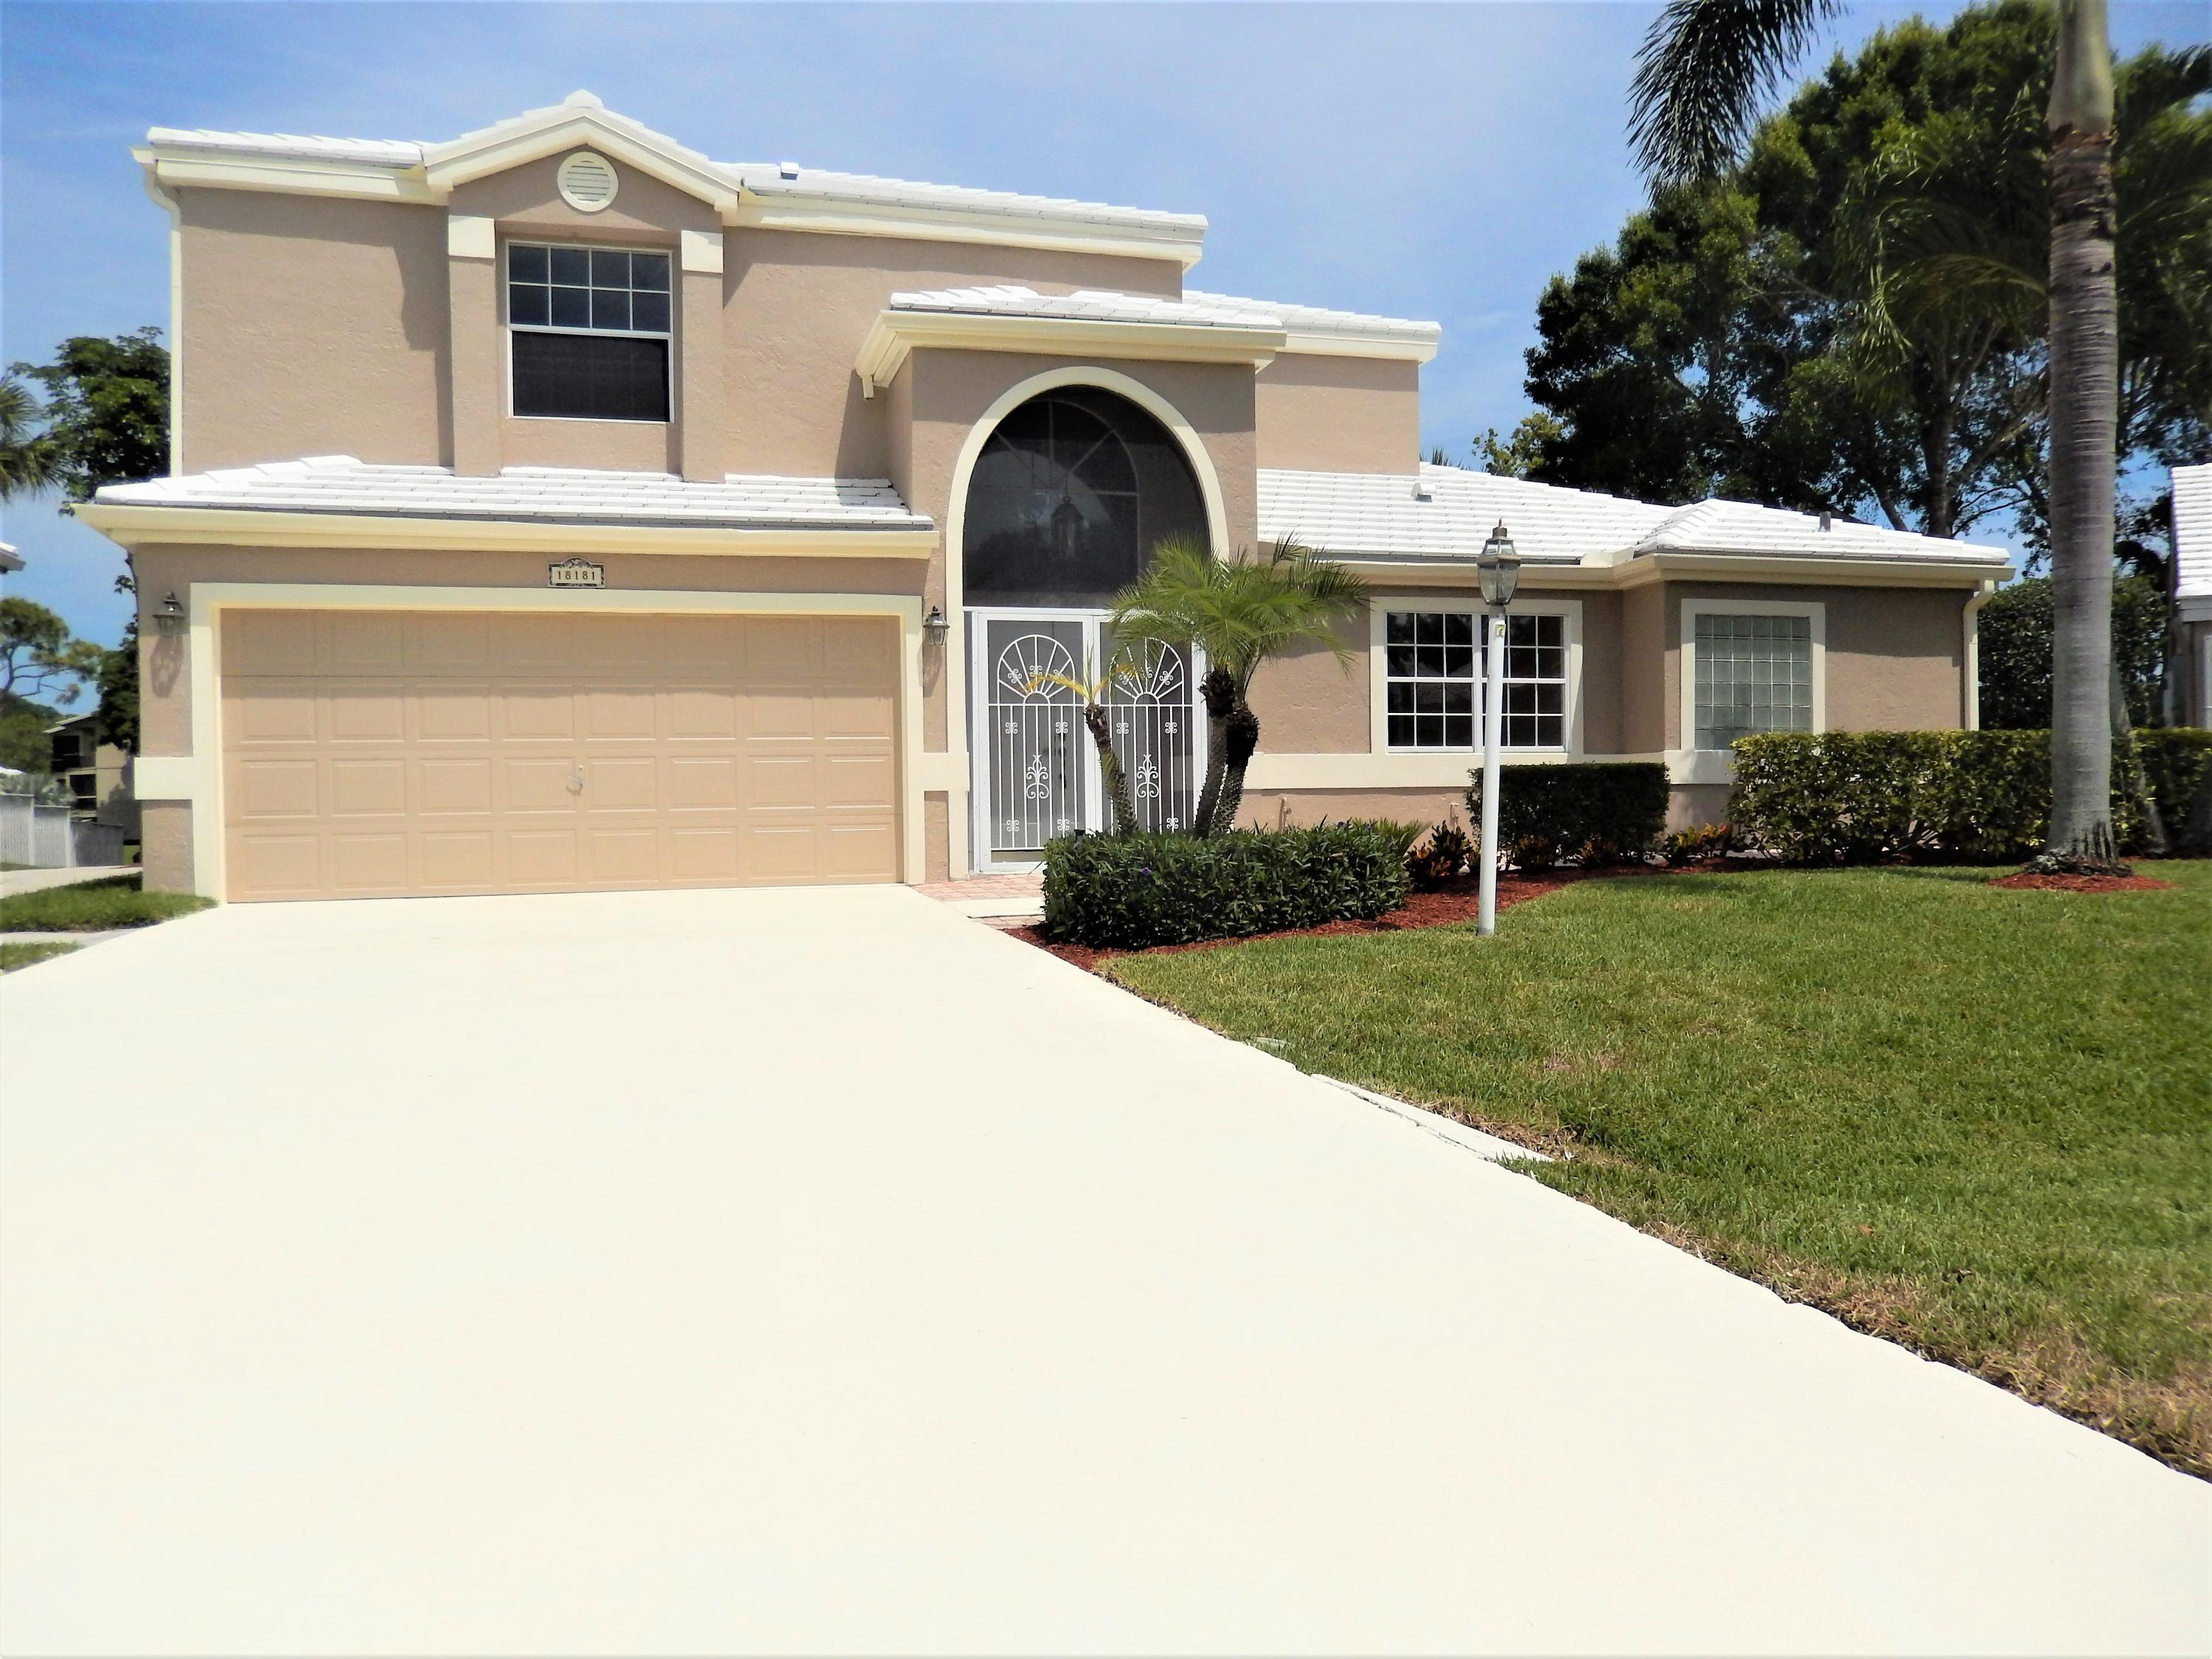 18181 Fairview Tequesta 33469